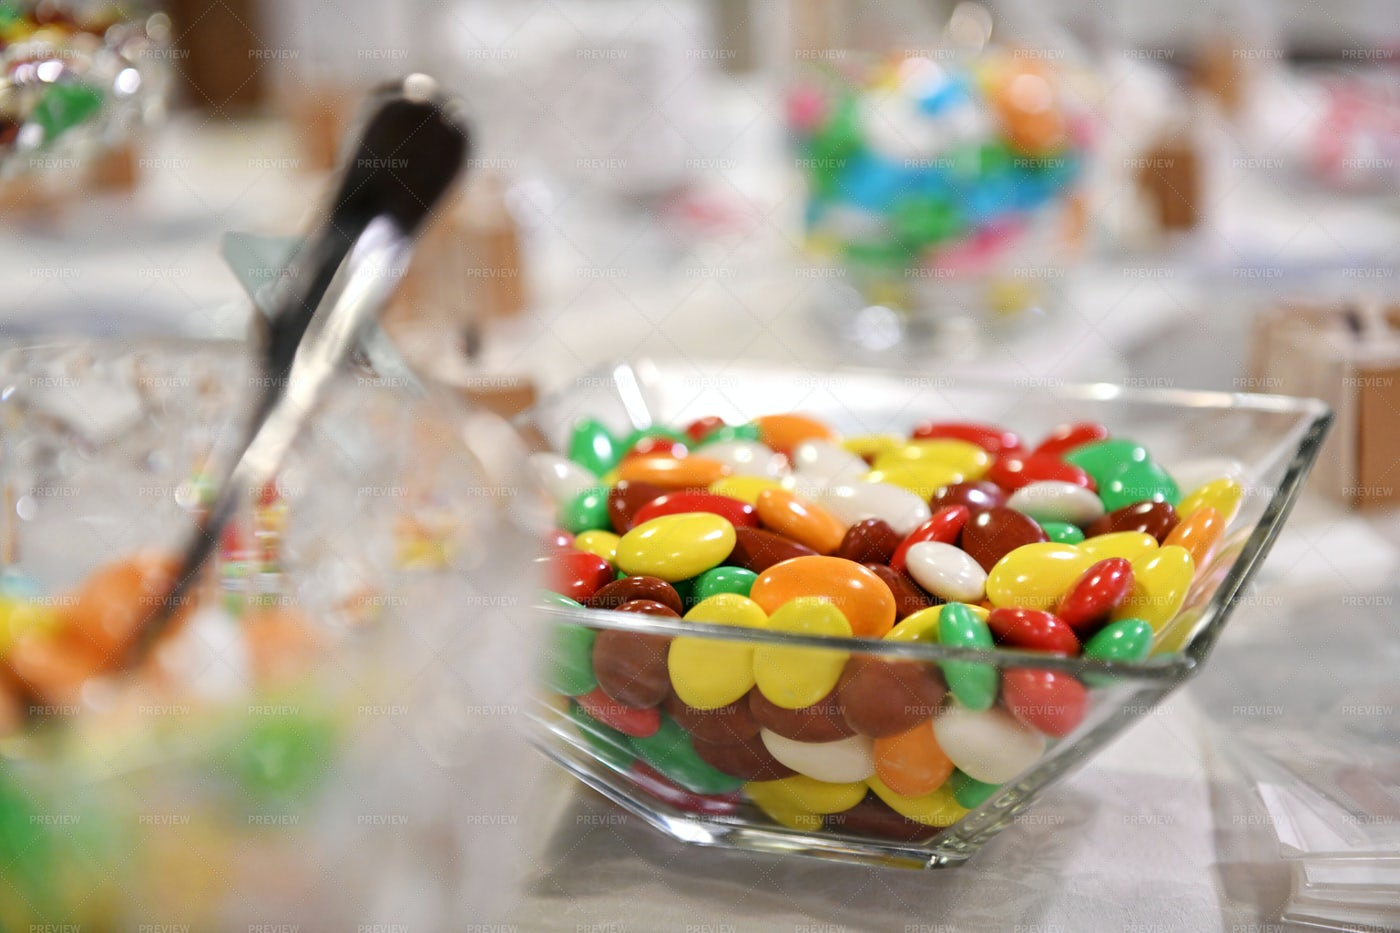 Bowl Of Colored Candies: Stock Photos